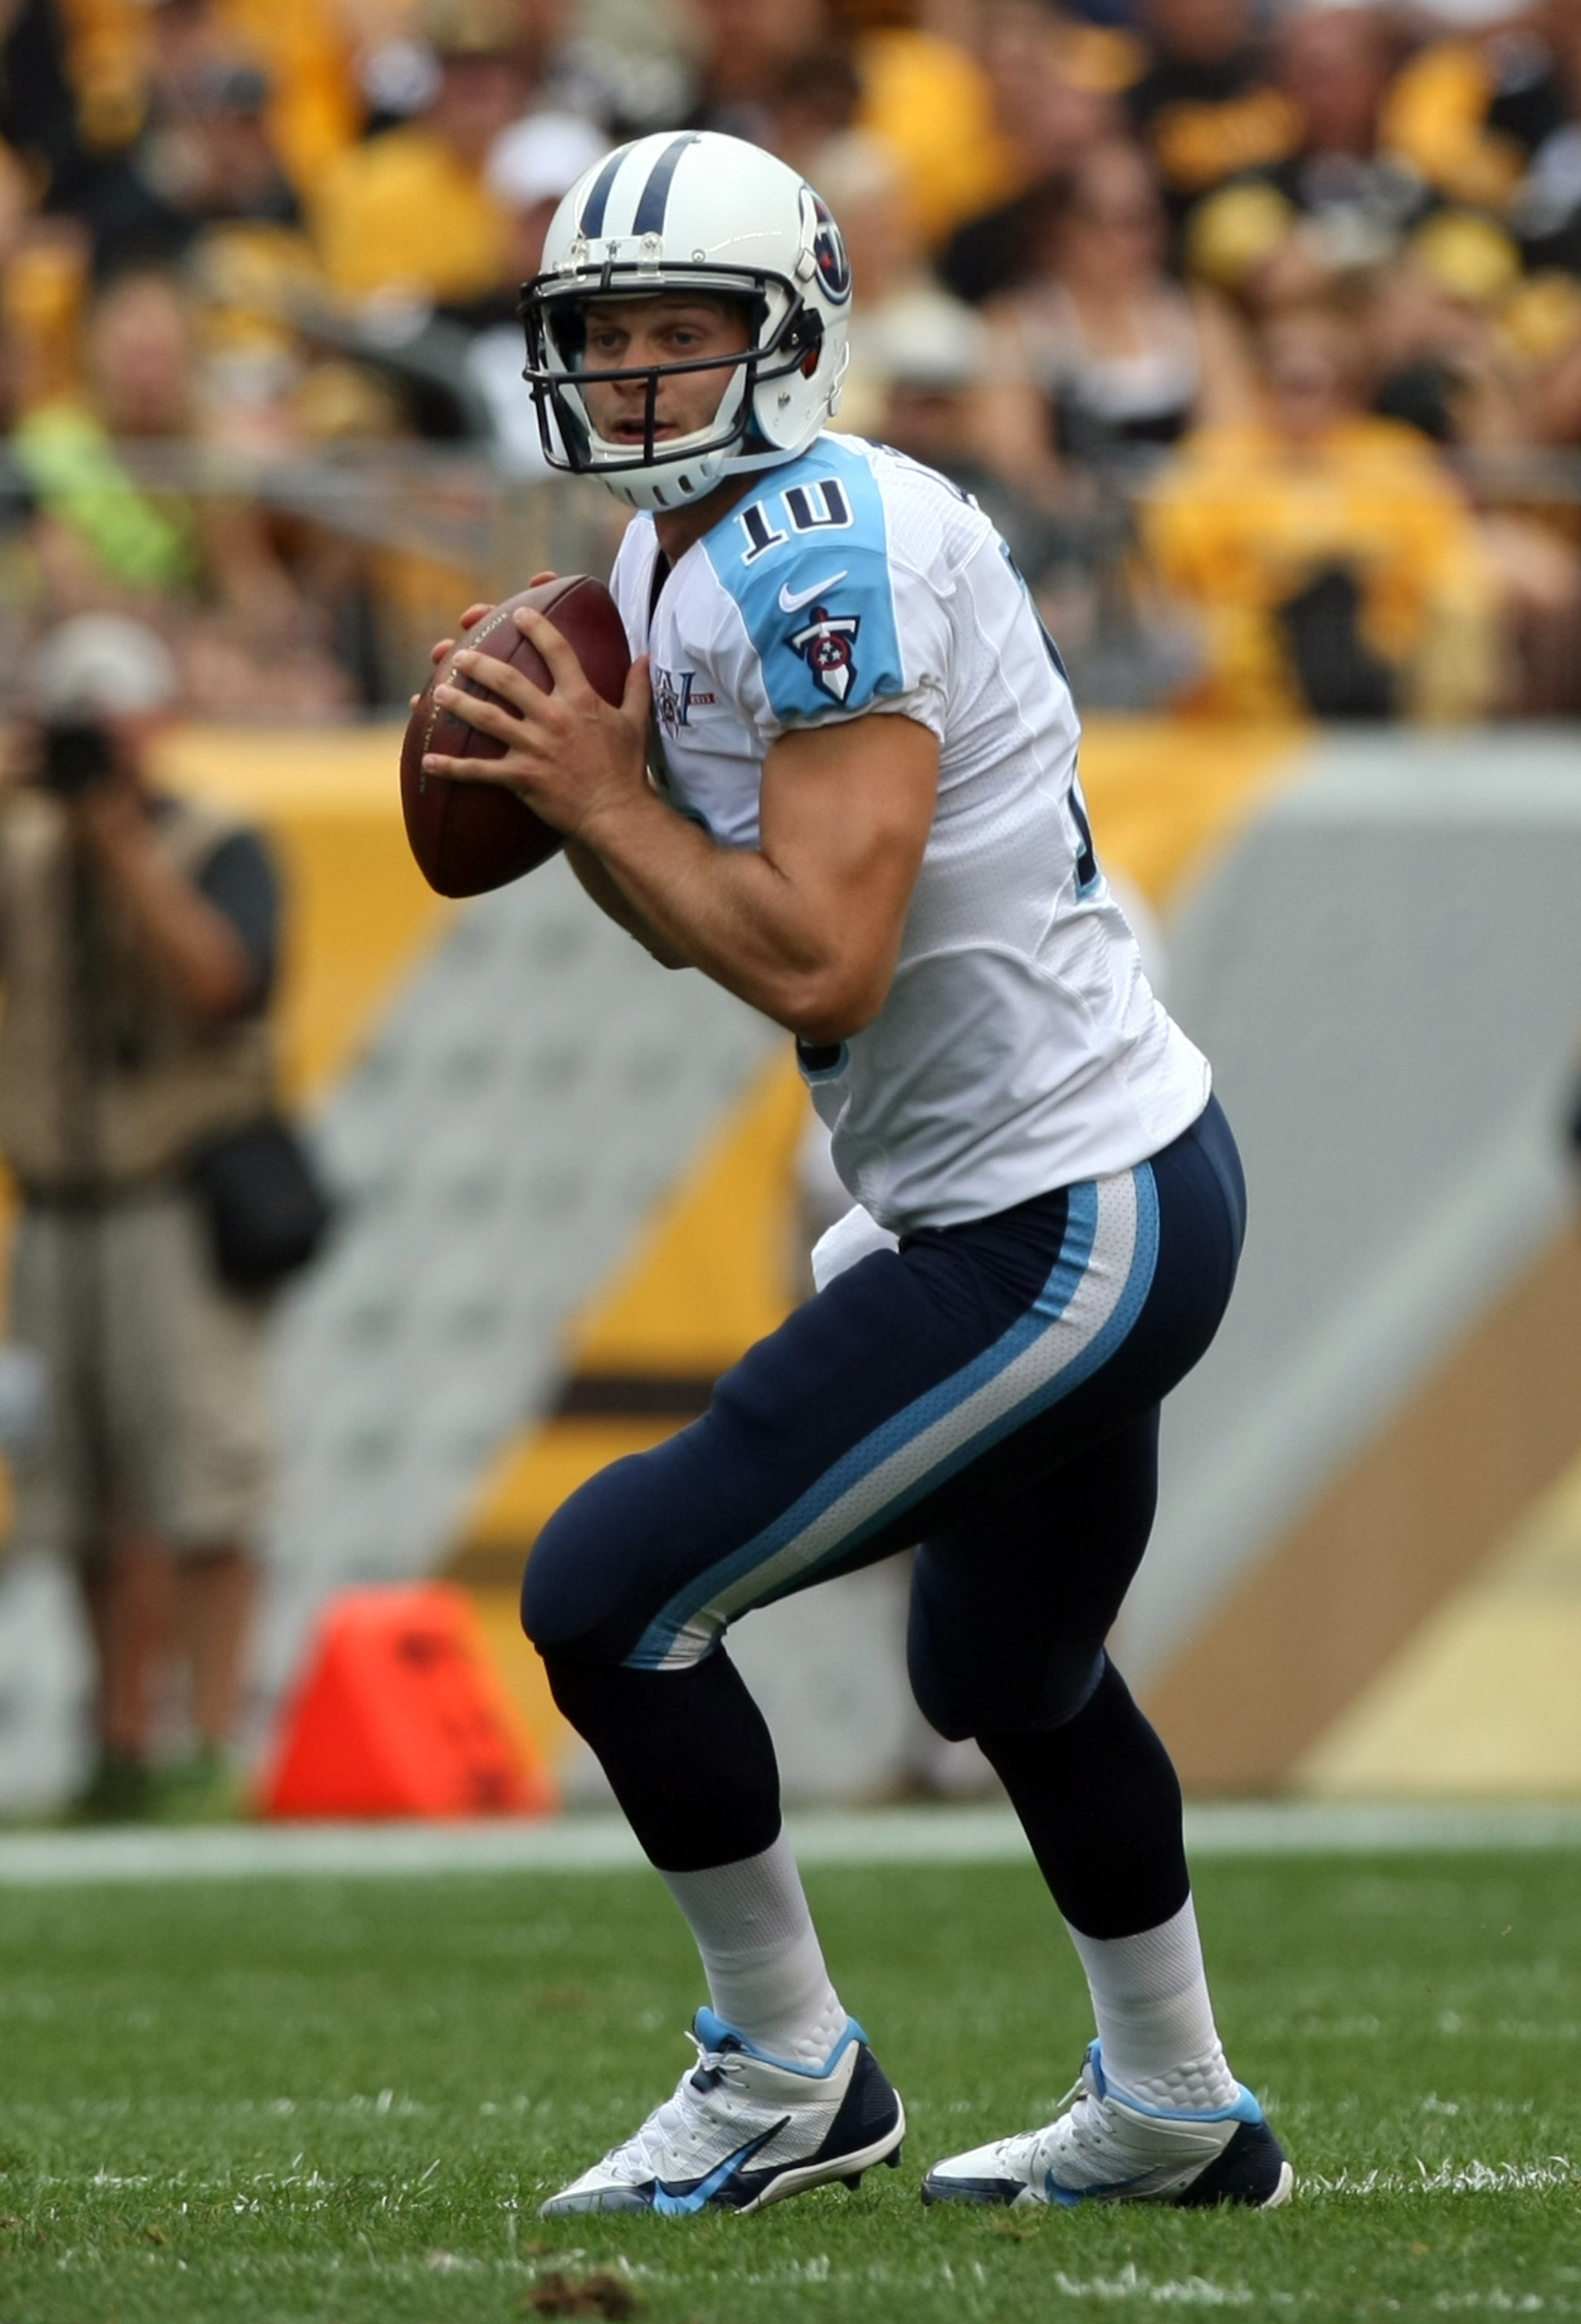 Titans vs. Steelers 2013: Tennessee 'wreaked havoc' in victory